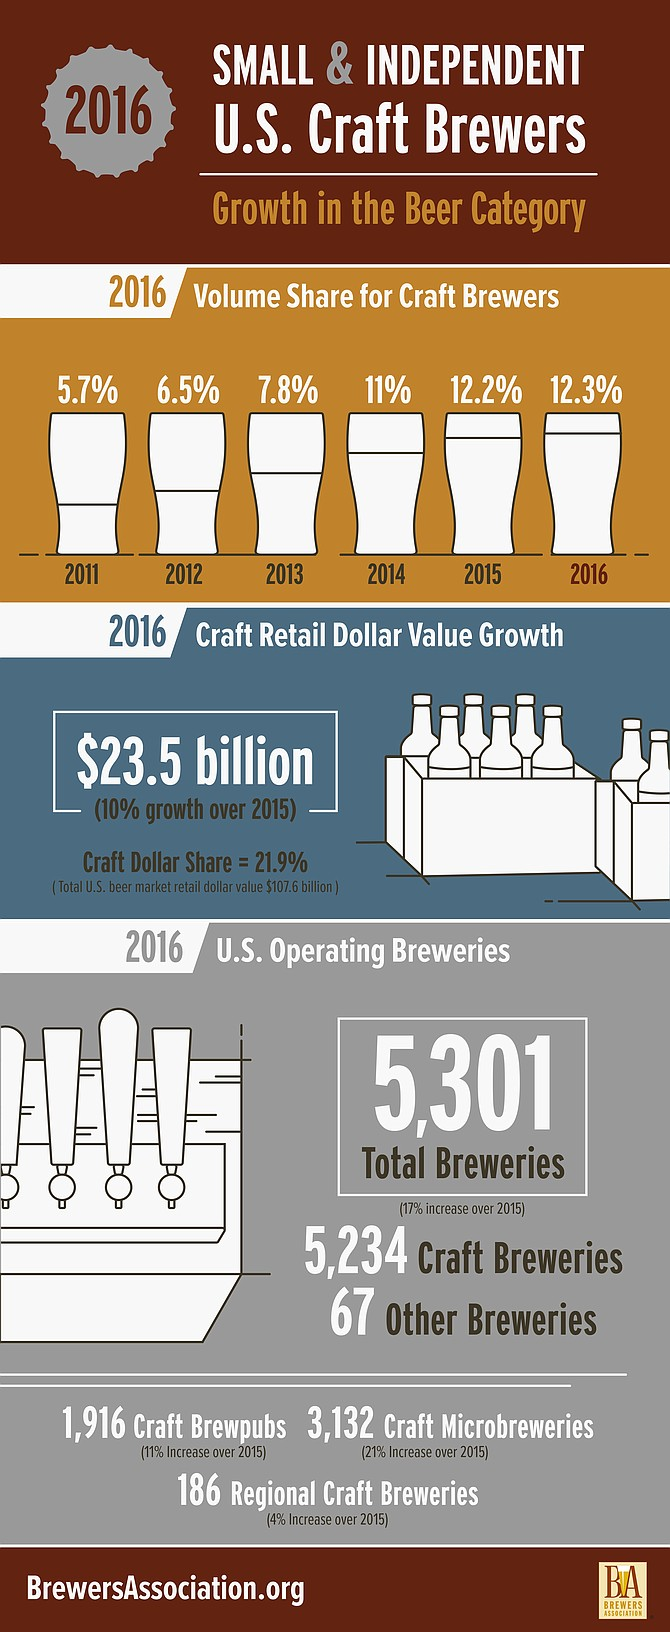 The Brewers Association offers its 2016 craft beer figures